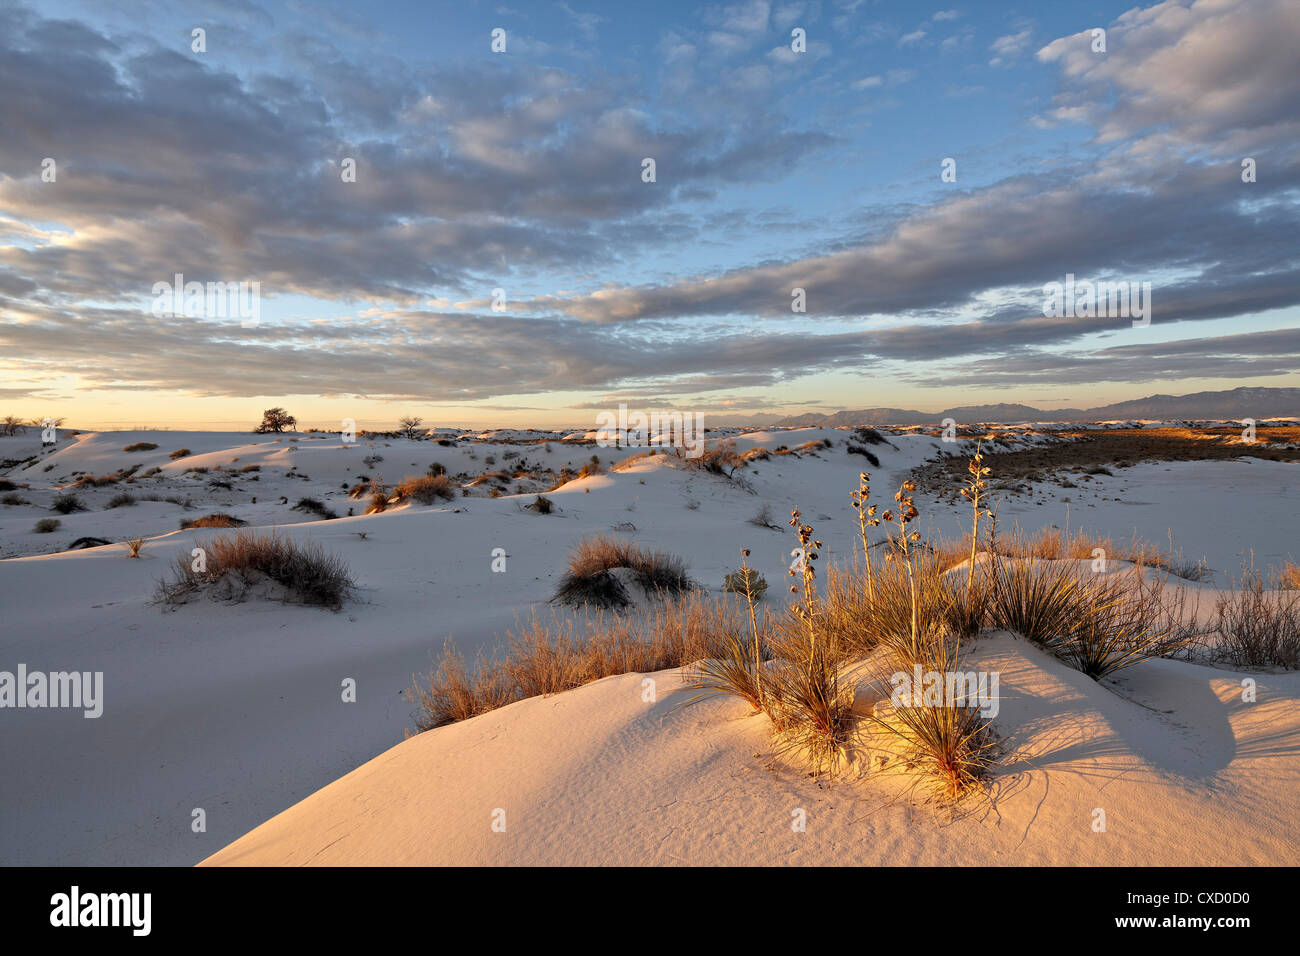 First light on a cluster of yucca among the dunes, White Sands National Monument, New Mexico, United States of America - Stock Image